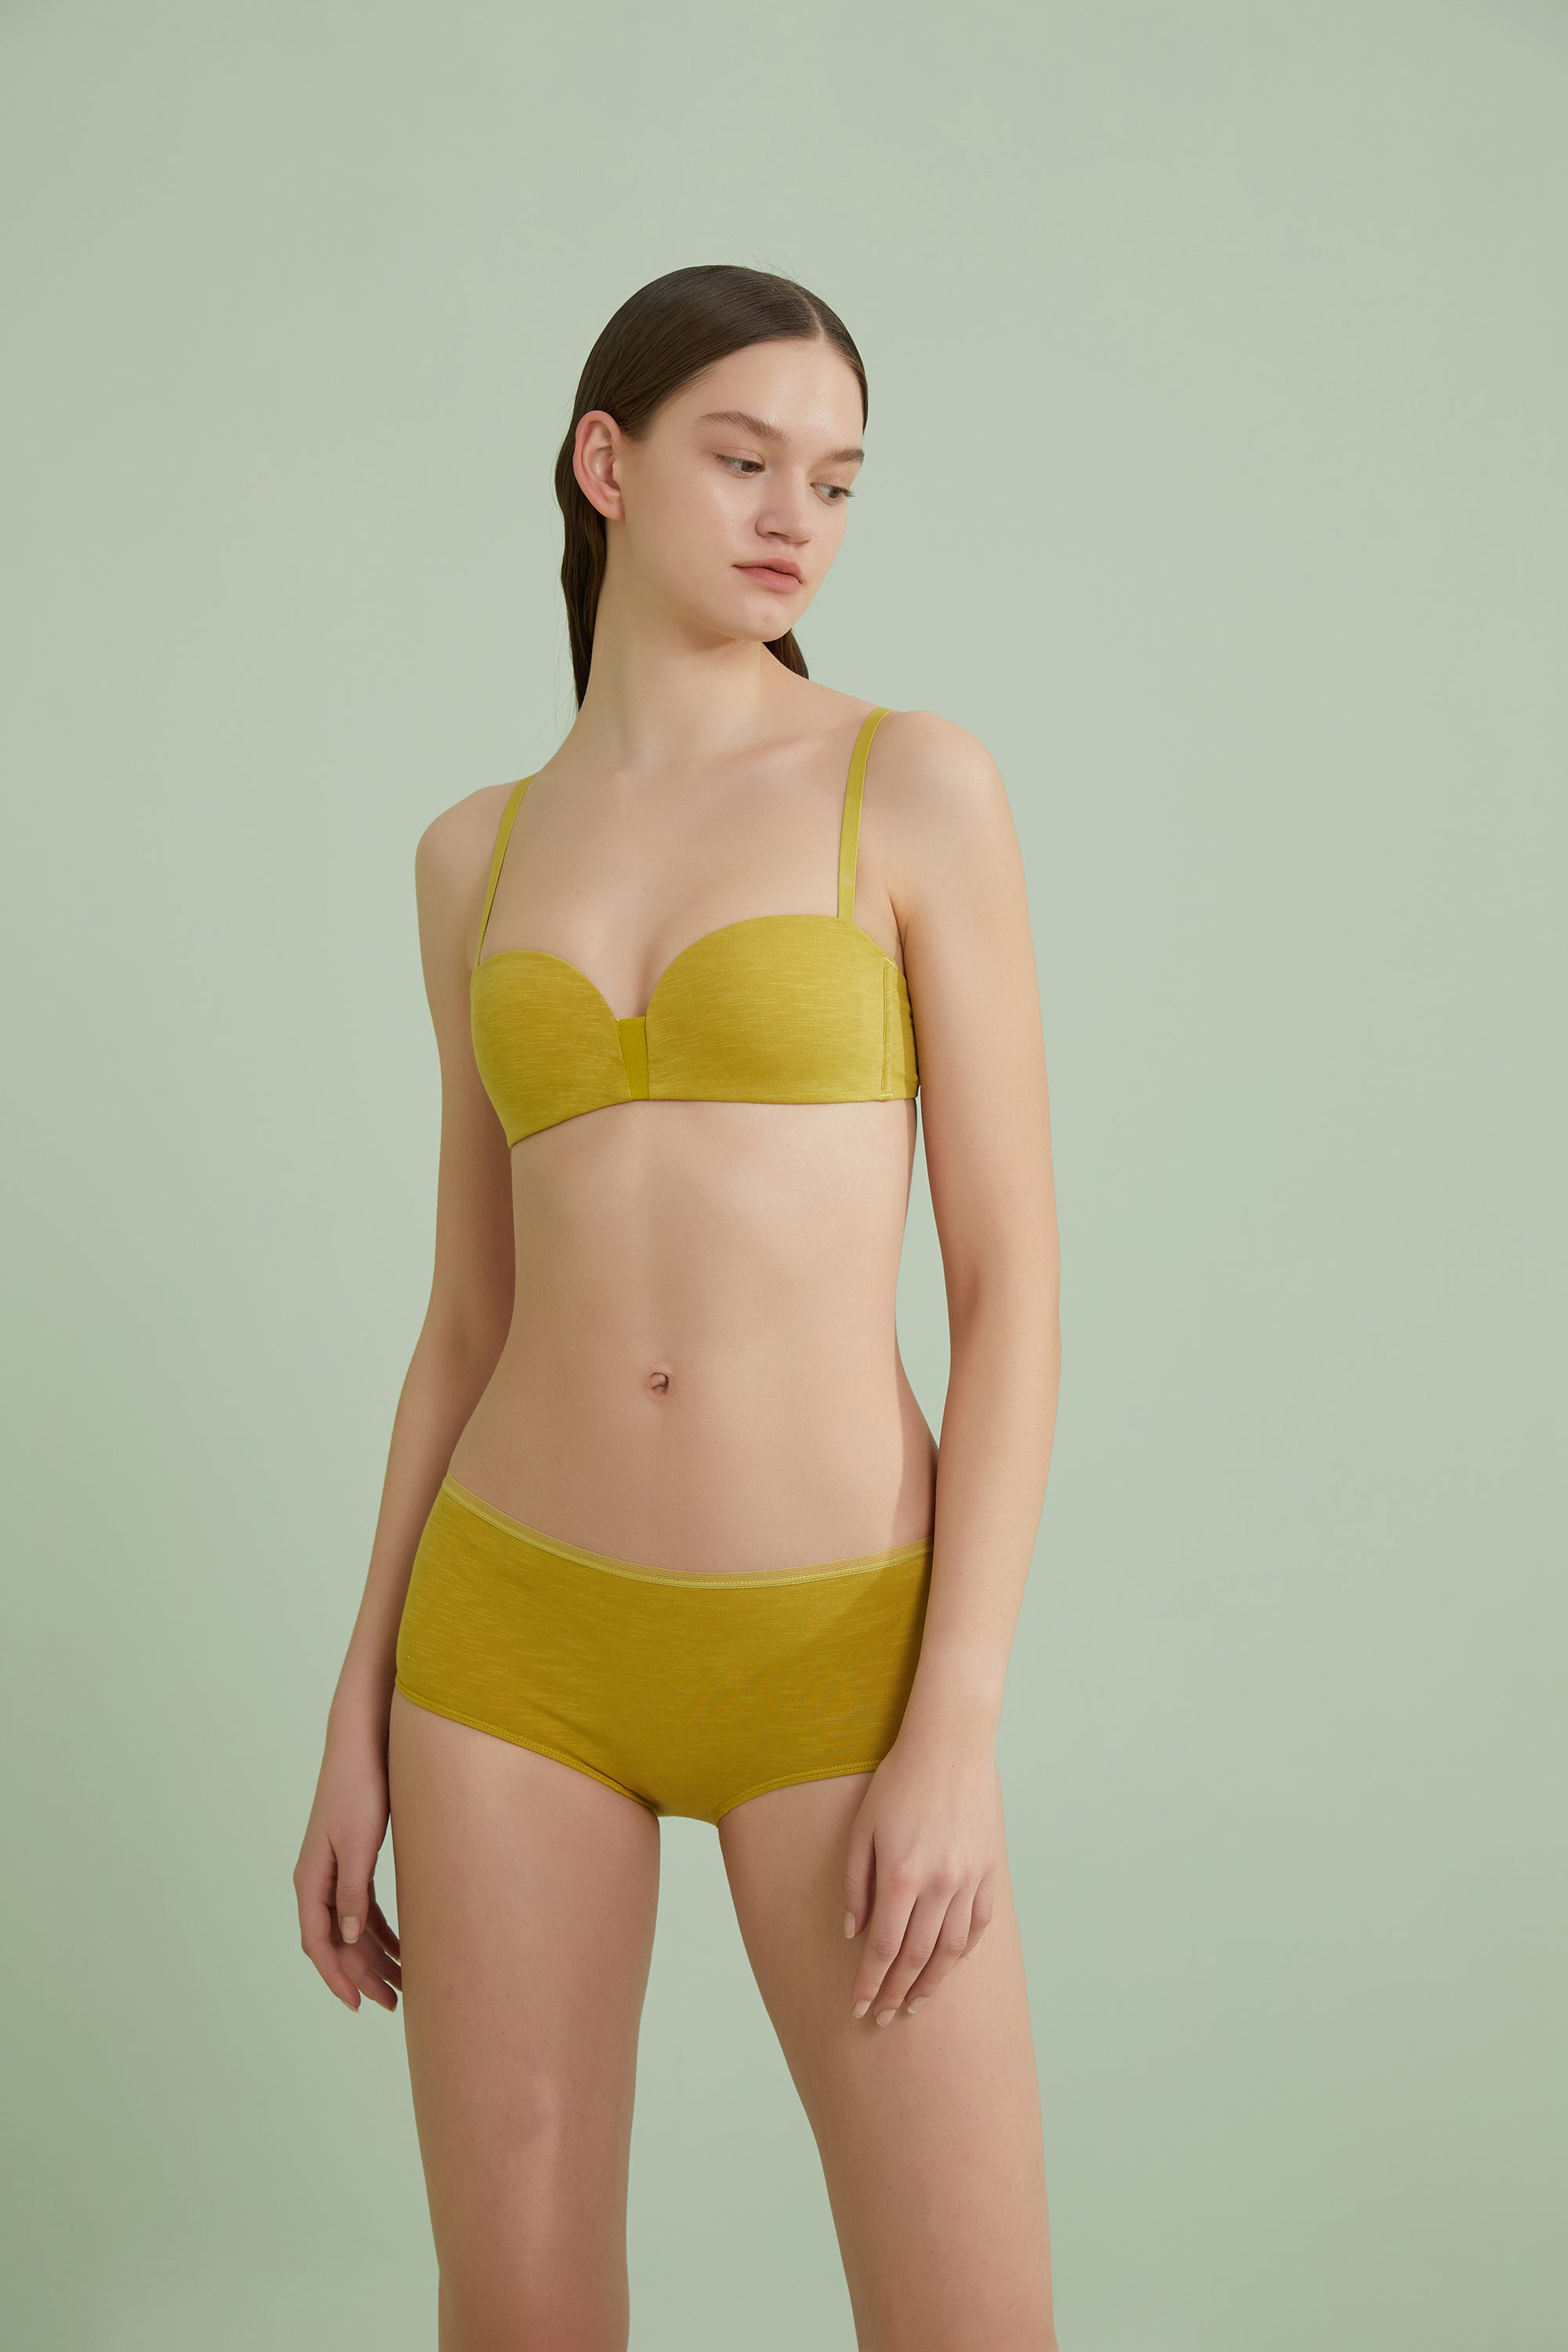 Model wearing NEIWAI's Pure Comfort Turkish Cotton High Waist Brief in Warm Olive.